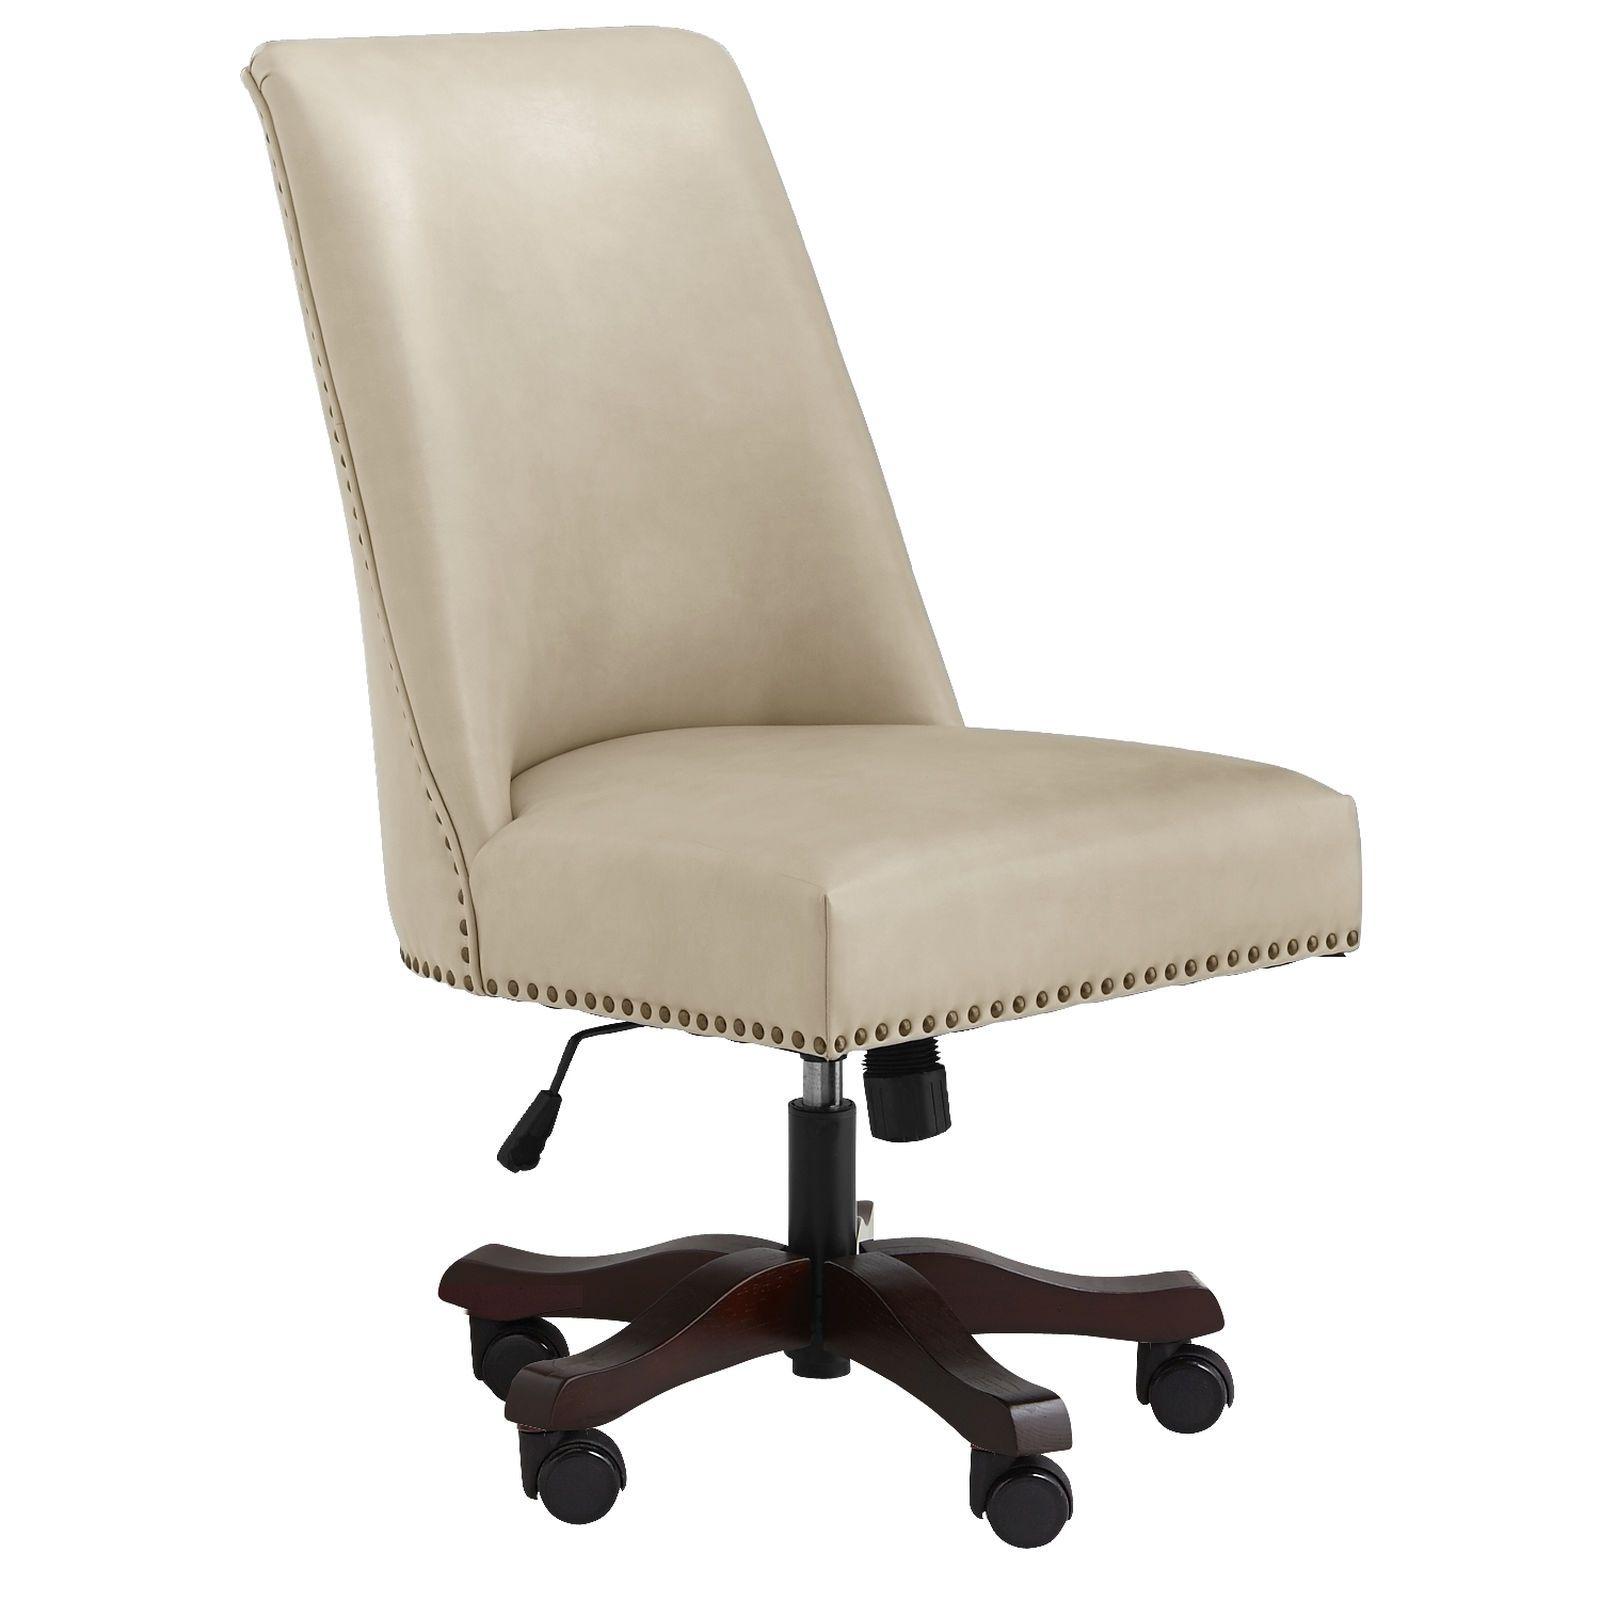 Corinne Ivory Swivel Desk Chair